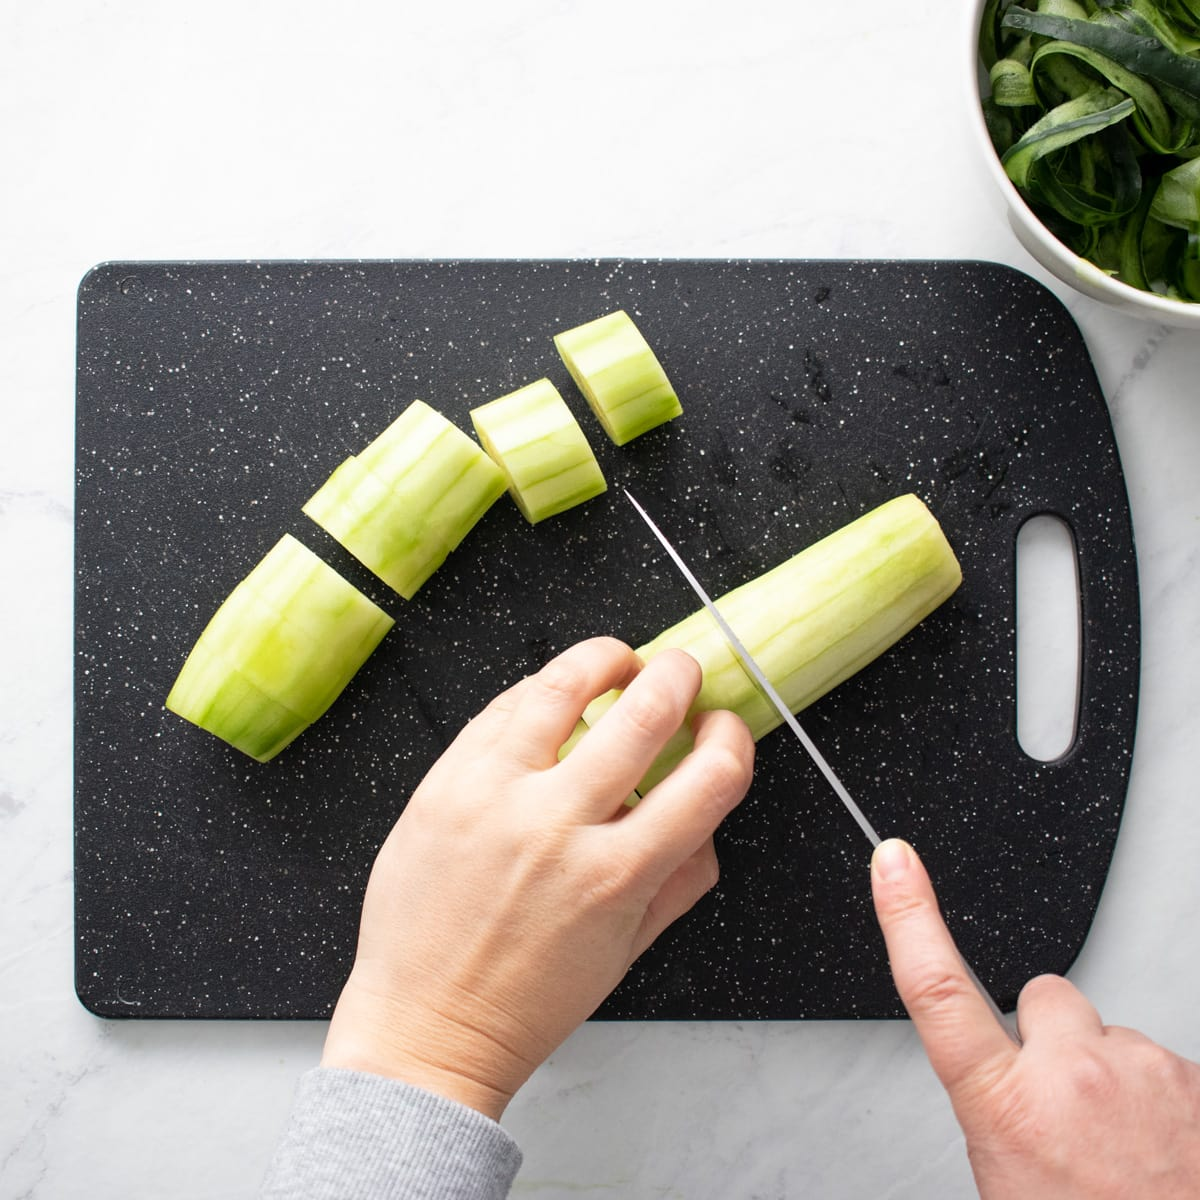 Cutting peeled cucumber into thick slices